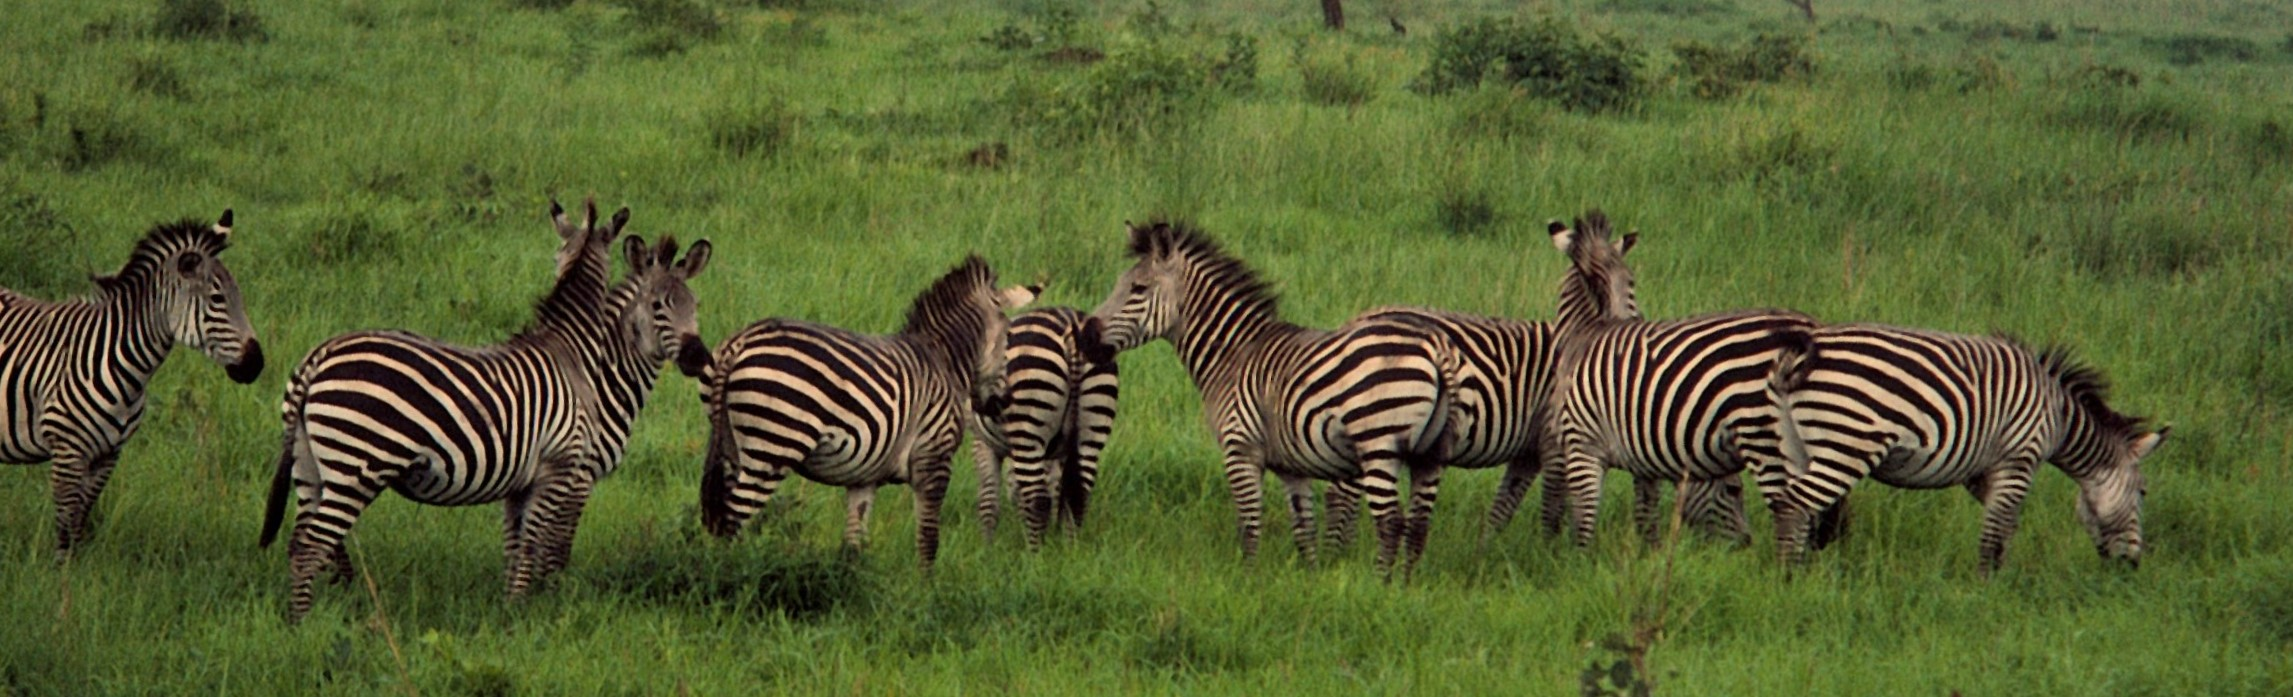 Freely roaming zebras in the Mikumi Naitonal Park in Tanzania